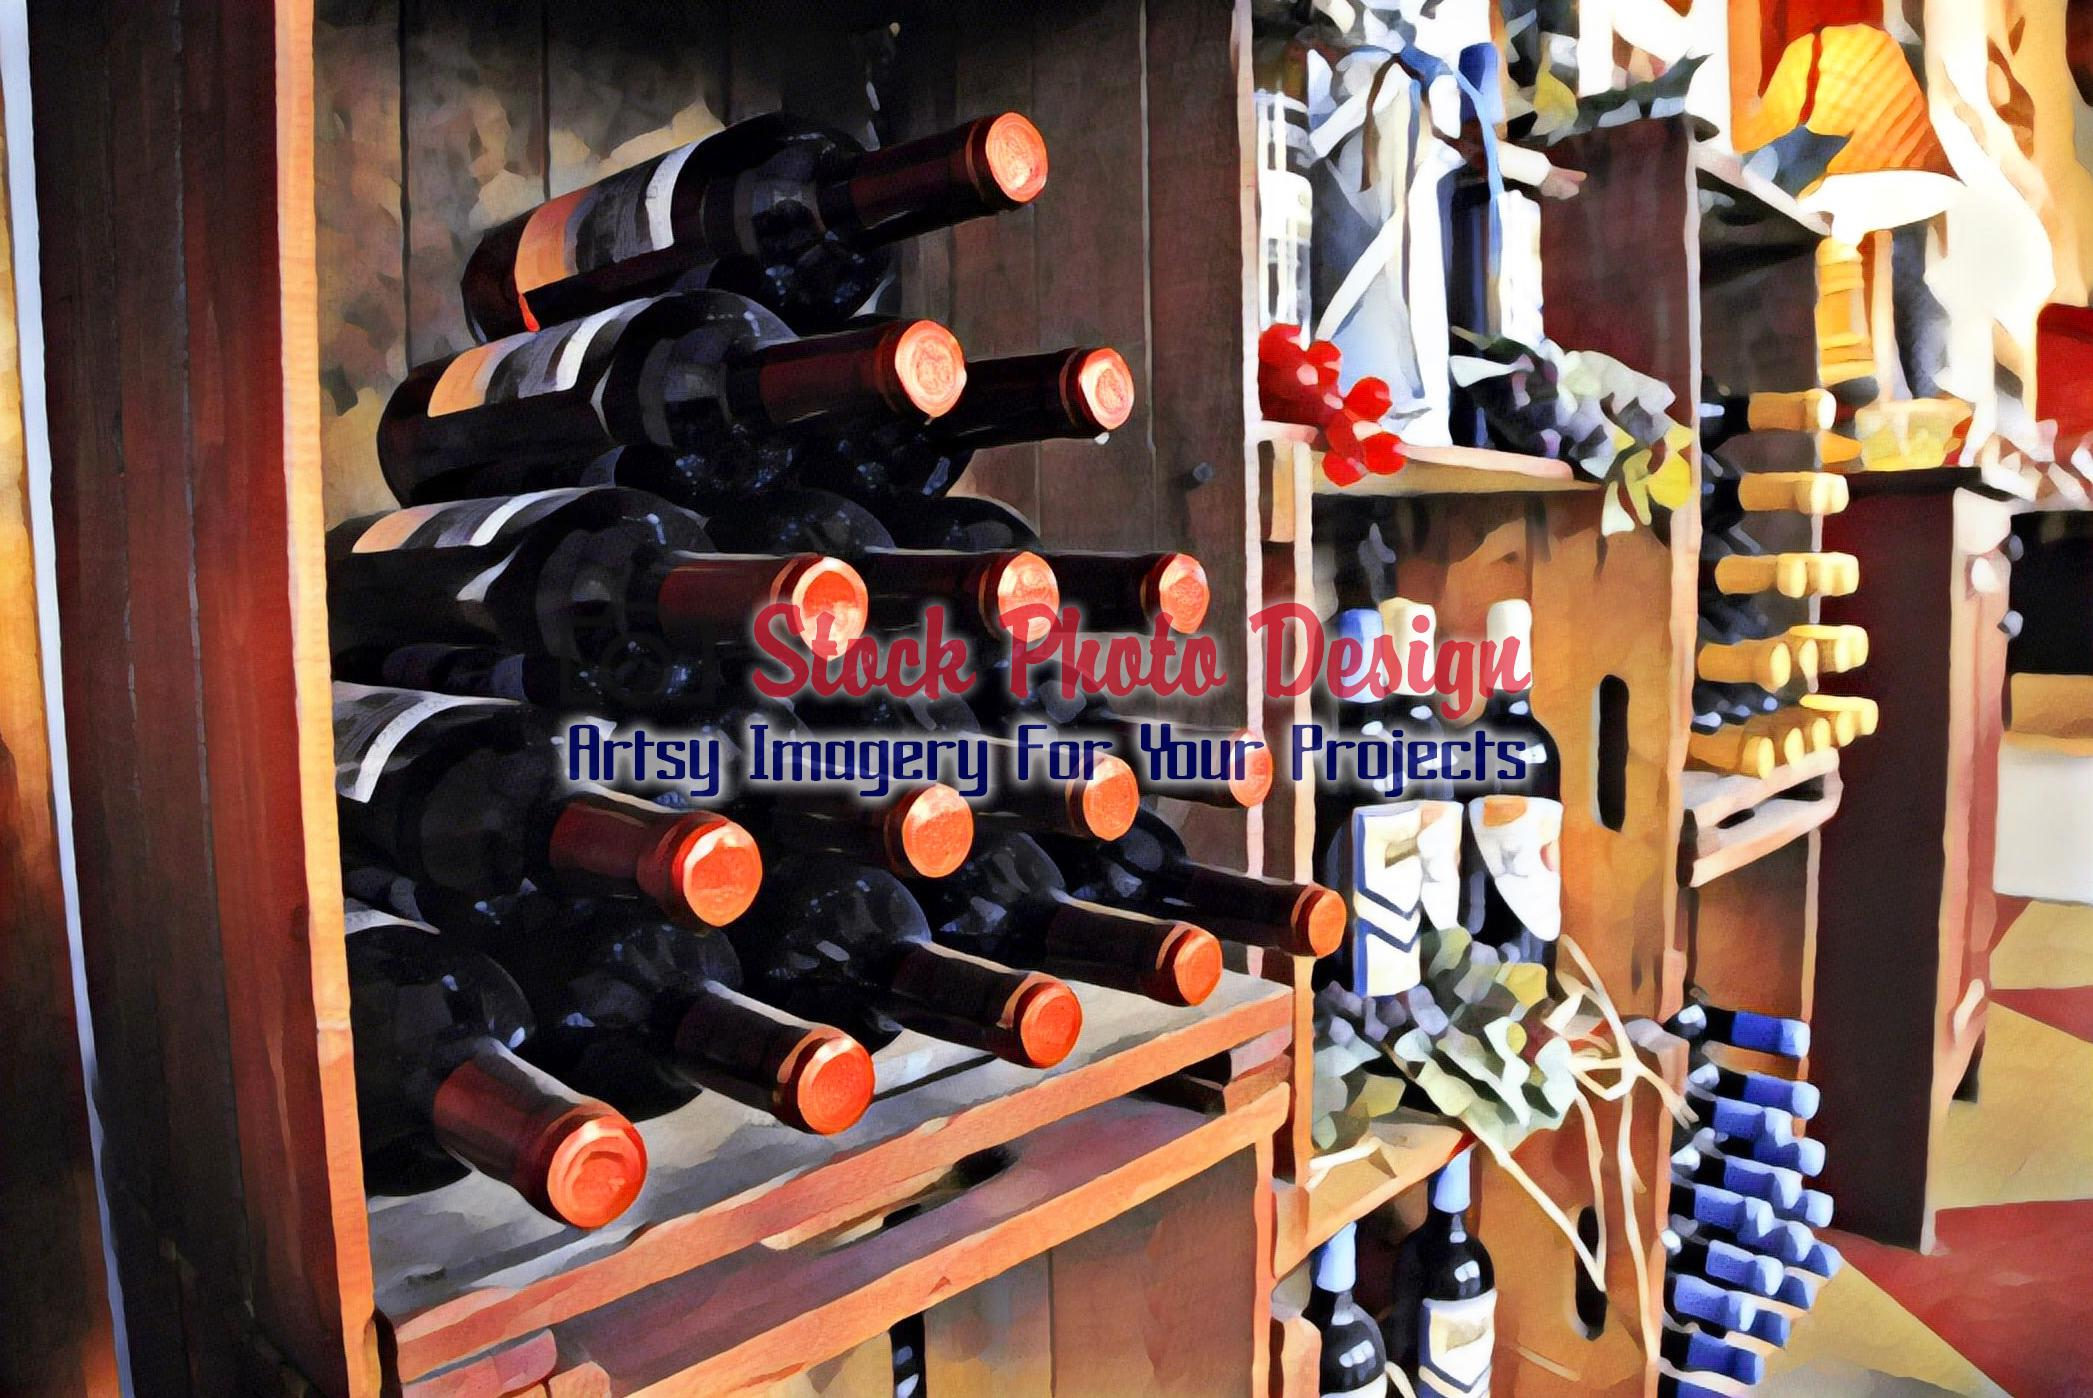 Wine Maker Store 5 - Dimensions:2093 by 1398 pixels